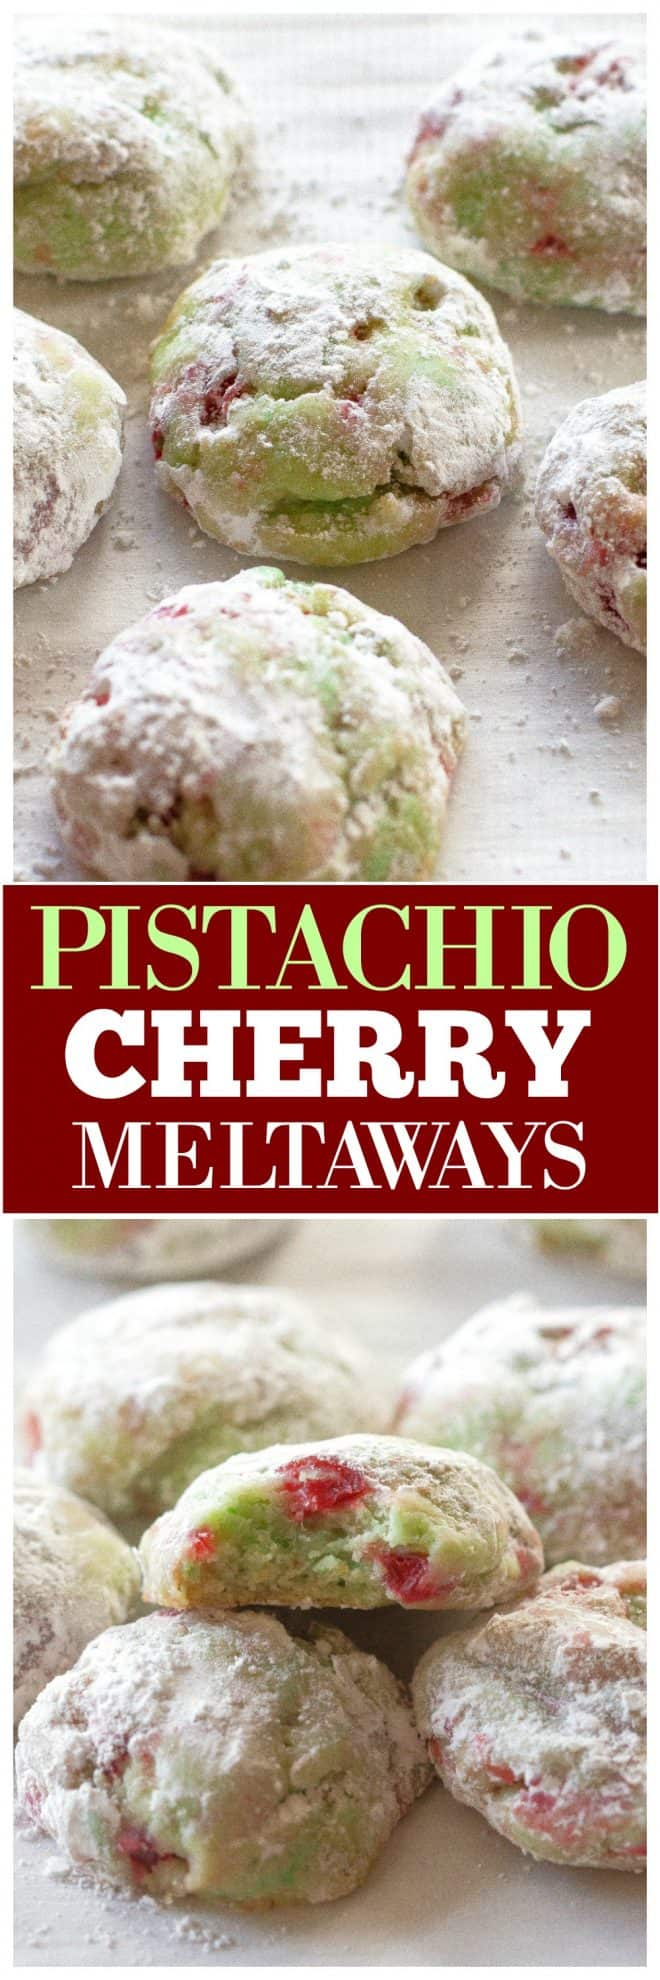 Pistachio Cherry Meltaways